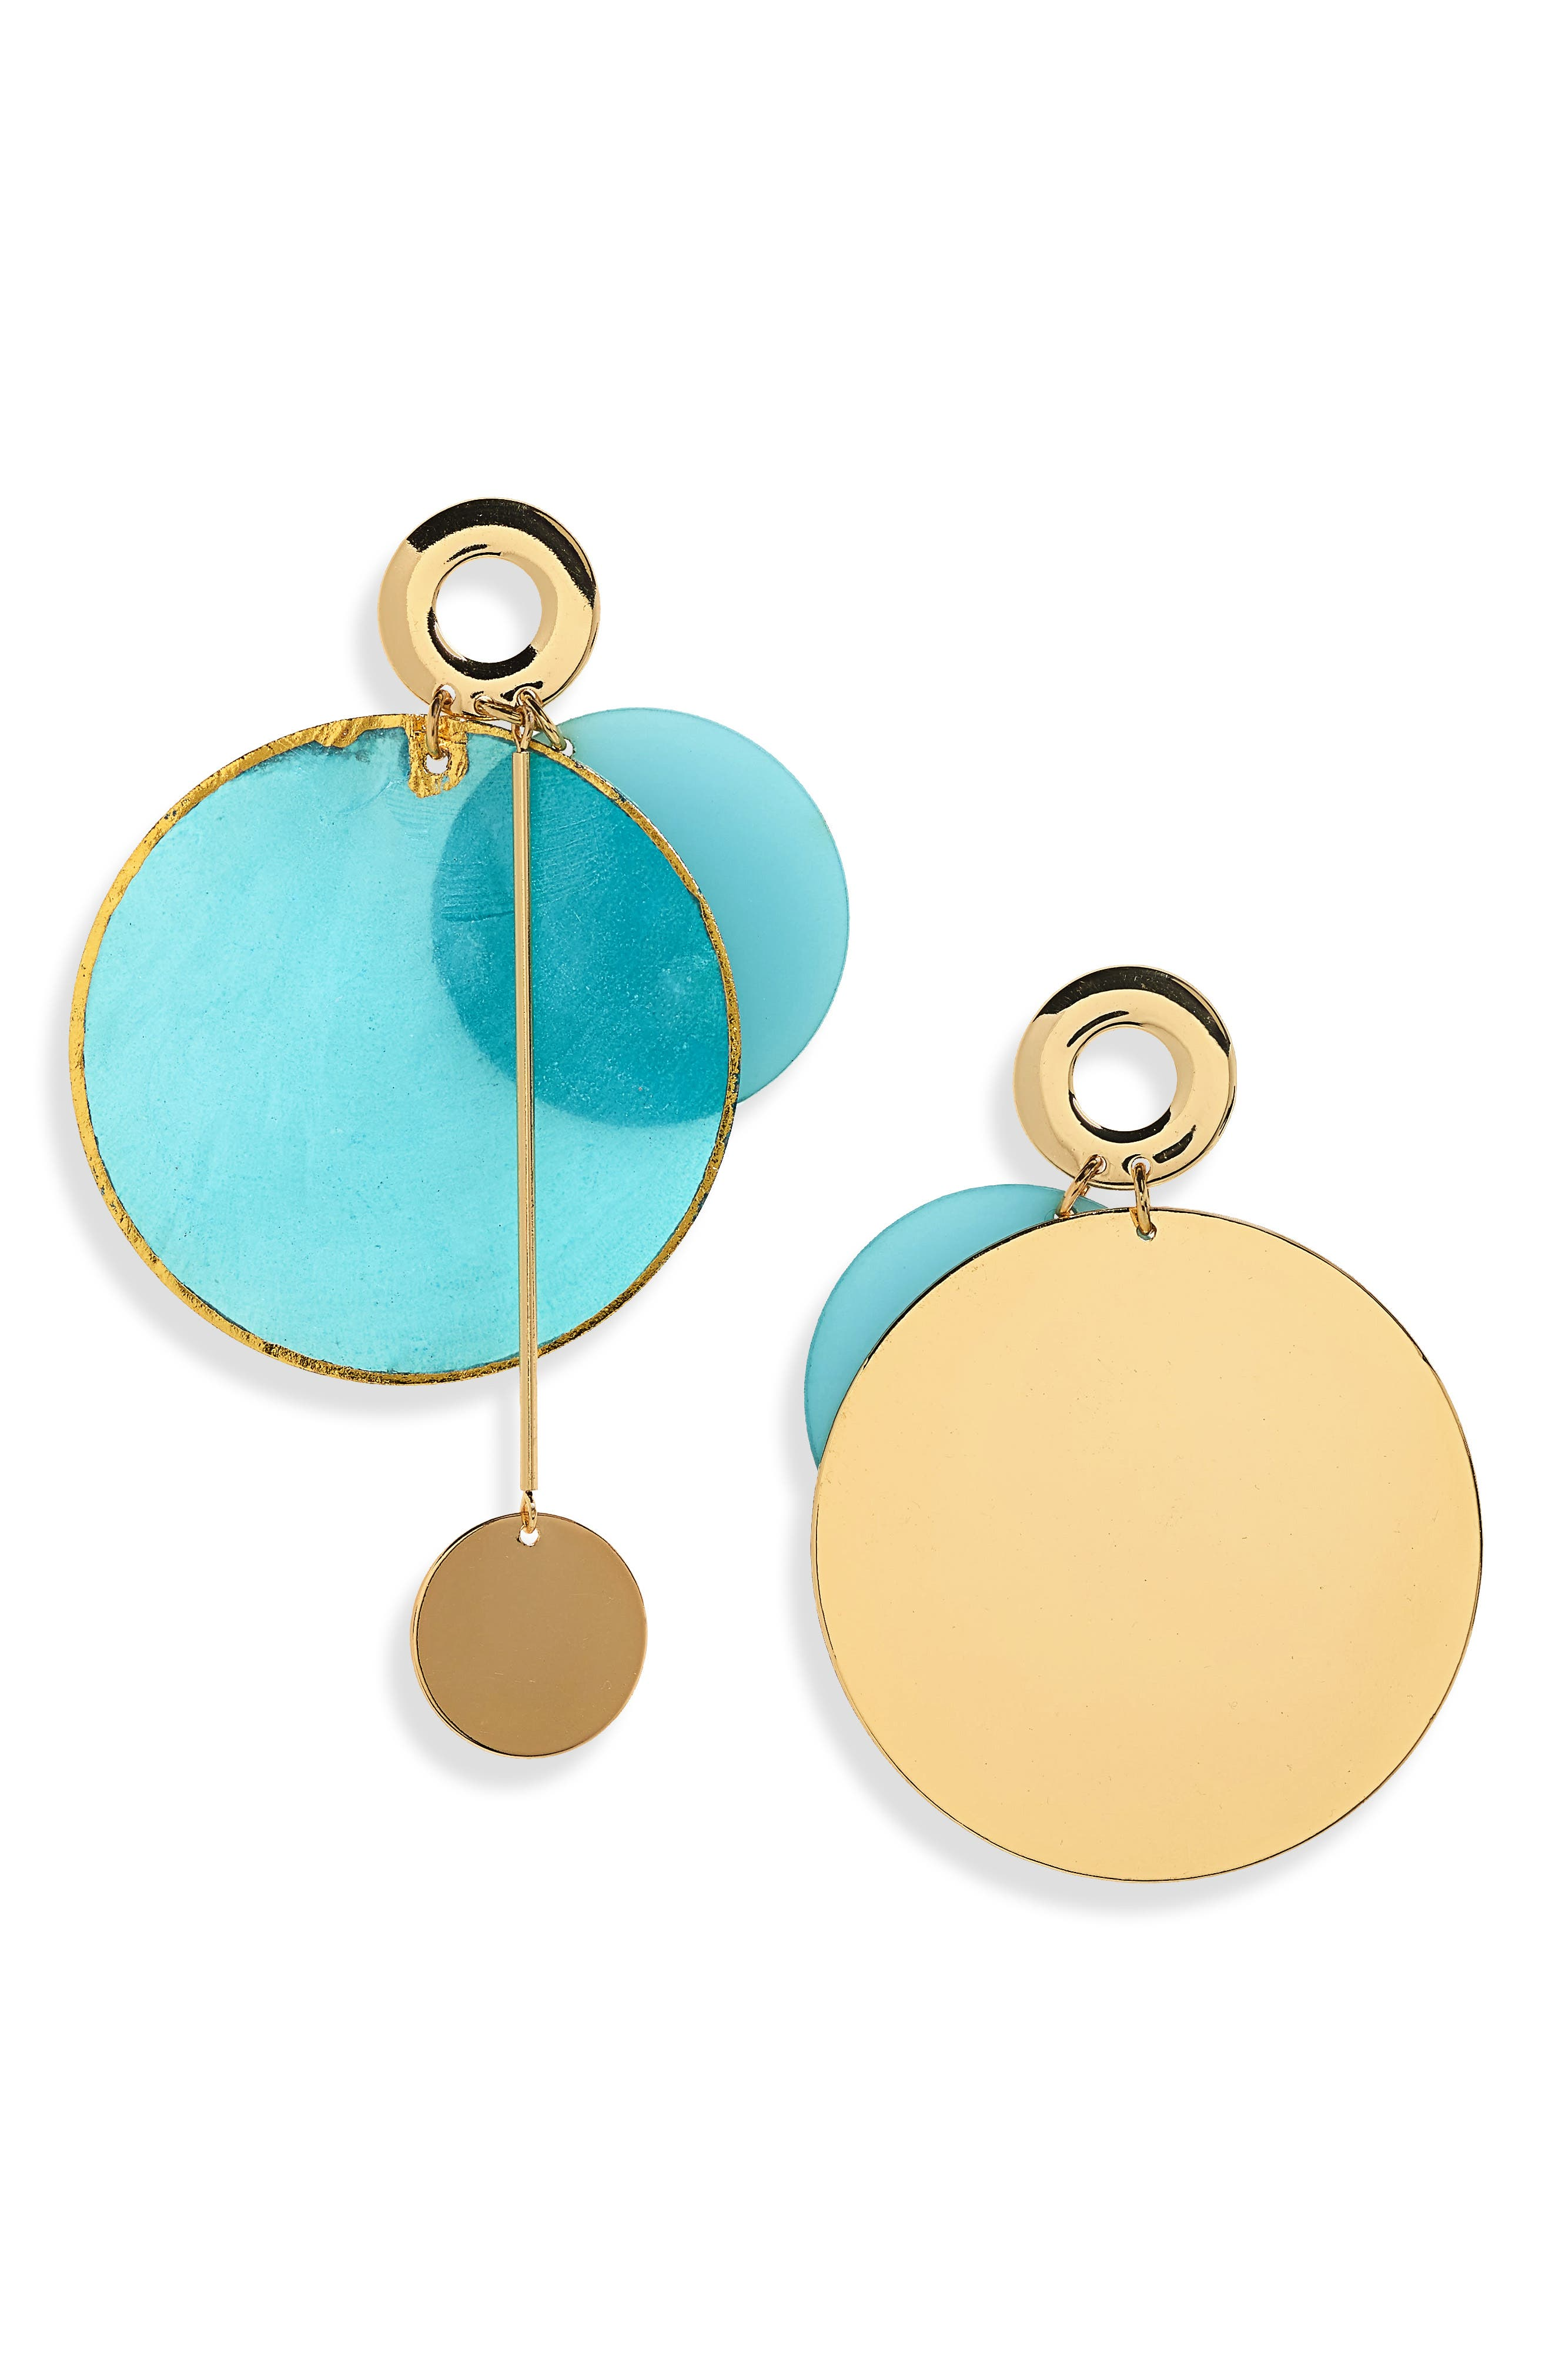 Acetate & Metal Disc Earrings,                         Main,                         color, Gold/ Turquoise